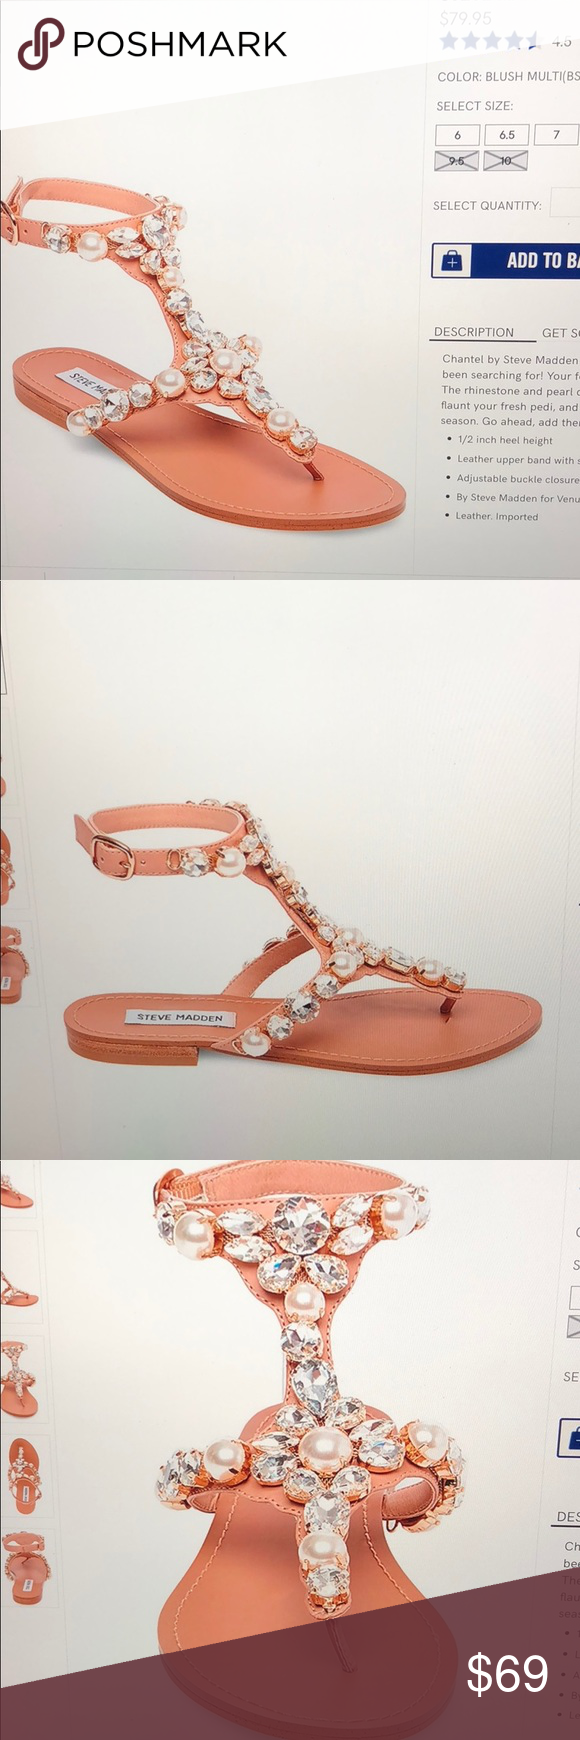 46001c596b6 Steve Madden crystal embellished sandal Only worn once. These sandals are  elegant and very stylish